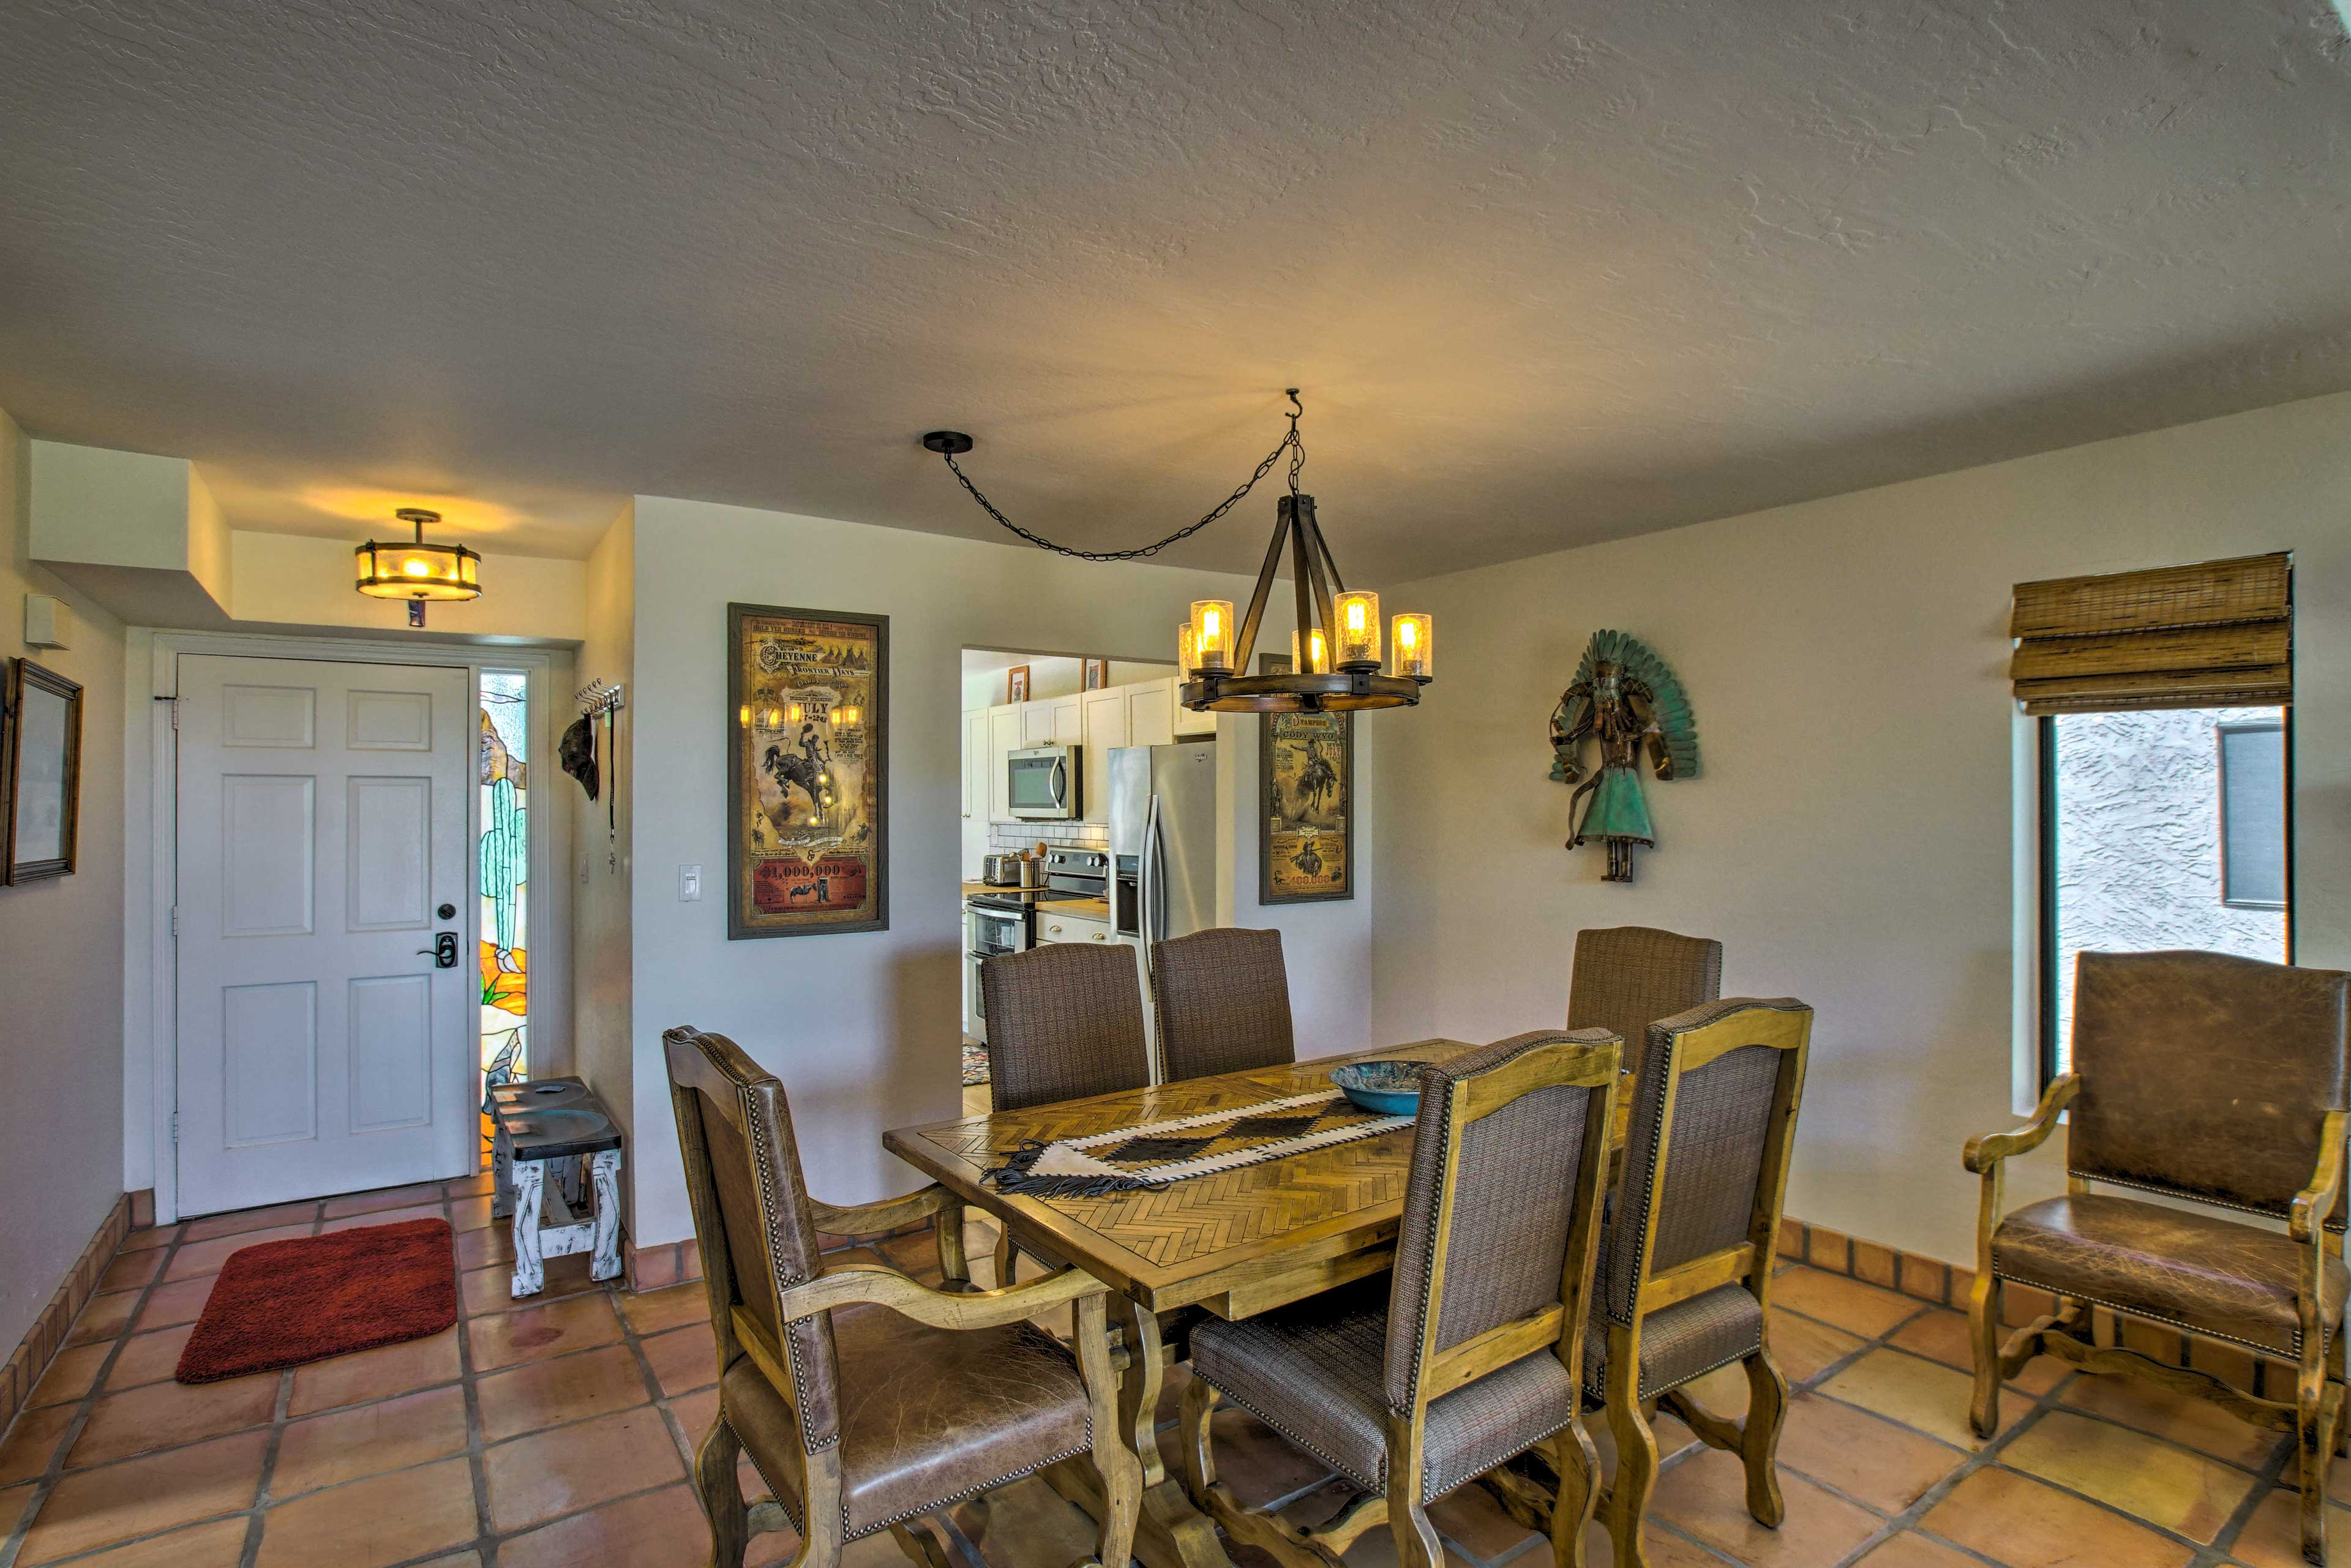 Savor home-cooked meals at the elegant 6-person dining table.